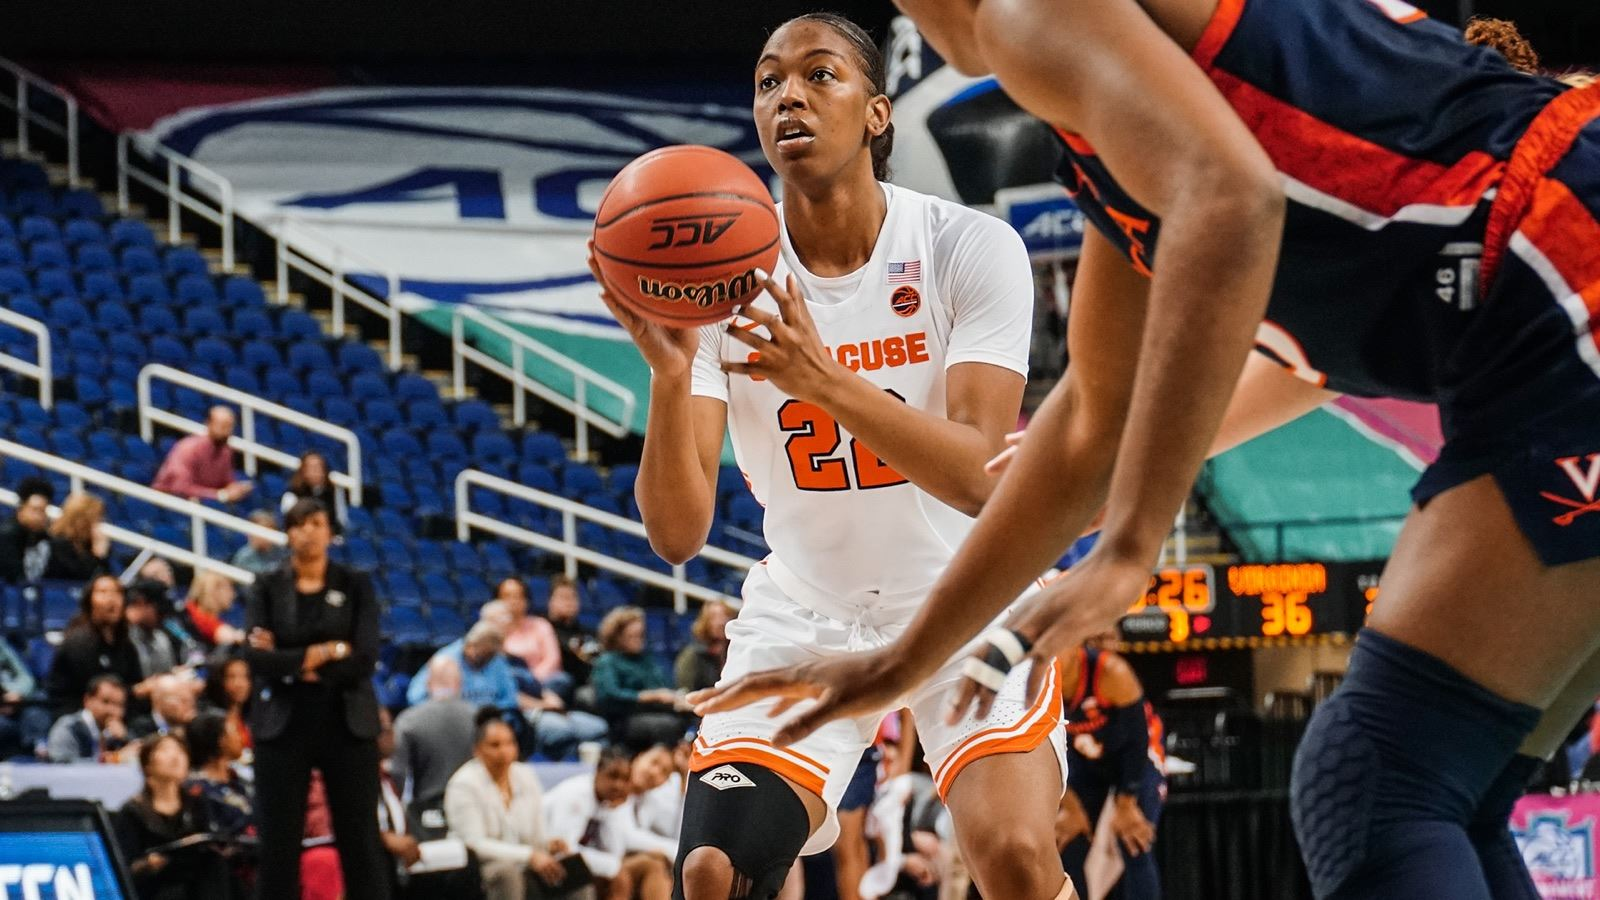 Syracuse takes down Virginia to advance to ACC Quarterfinals